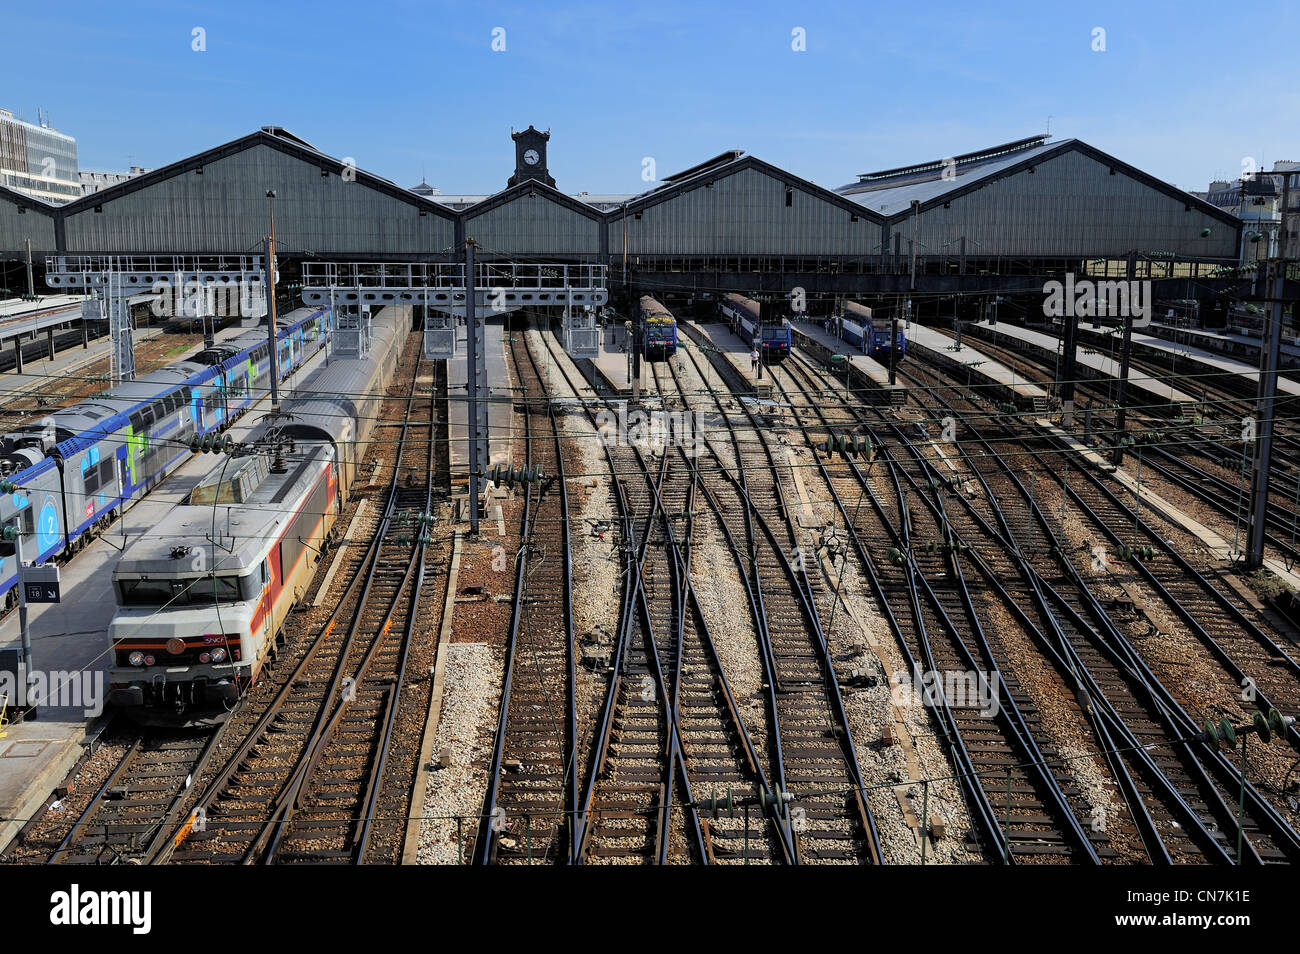 France, Paris, Gare Saint Lazare train station seen from ...